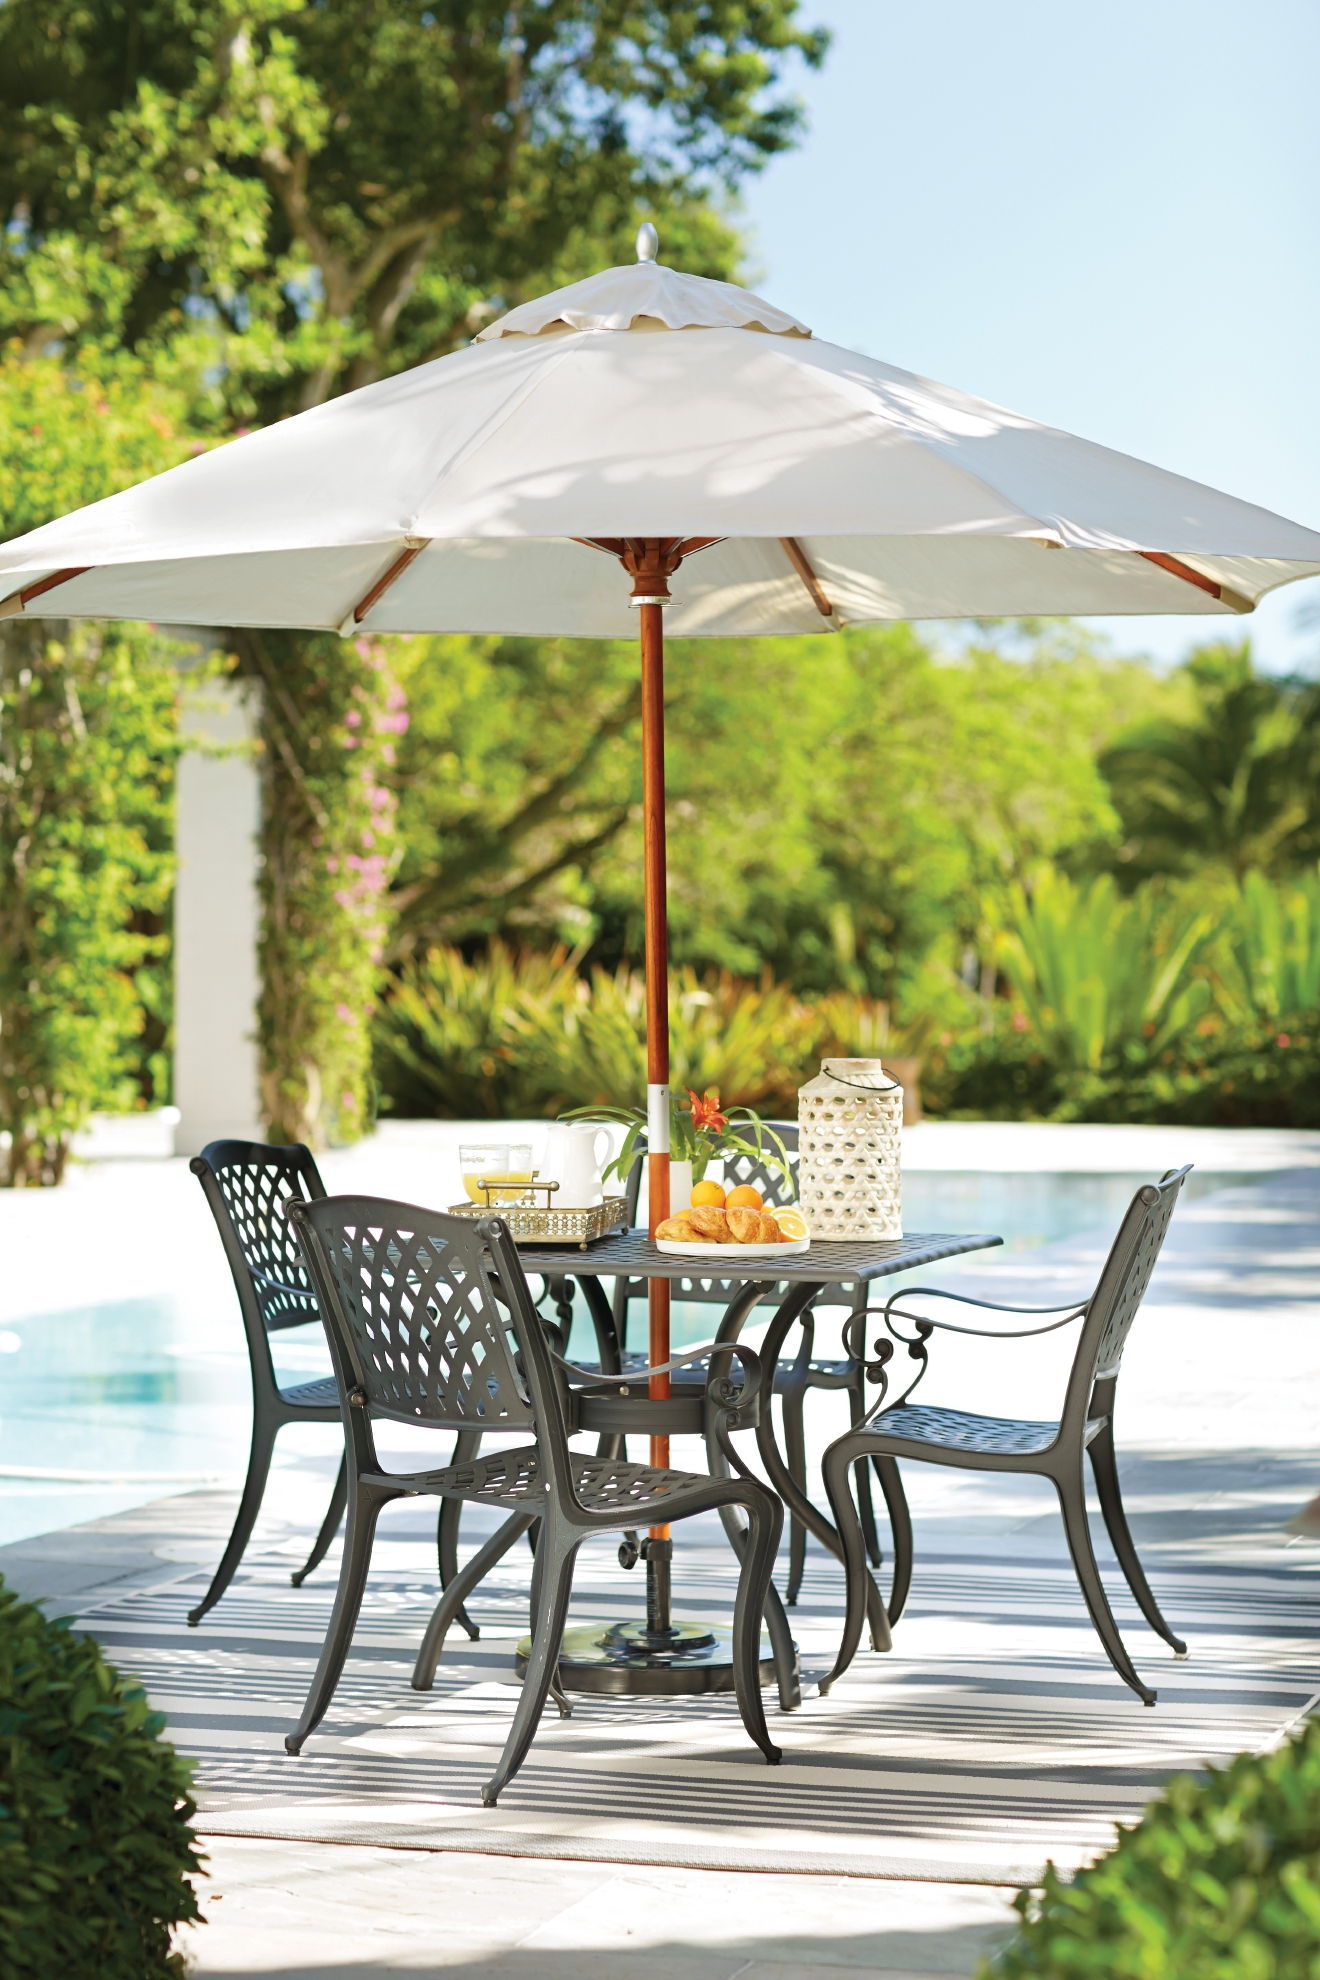 Summer is here, which means it's time to take the rain covers off the barbecue and dust off that table set! But not everyone can make an adorable Pinterest-worthy outdoor dining area, so we asked Porch, ATGStores.com and Wayfair (the true experts) to help us pick some pieces that take dining in your backyard to the next level. (Image: Wayfair)